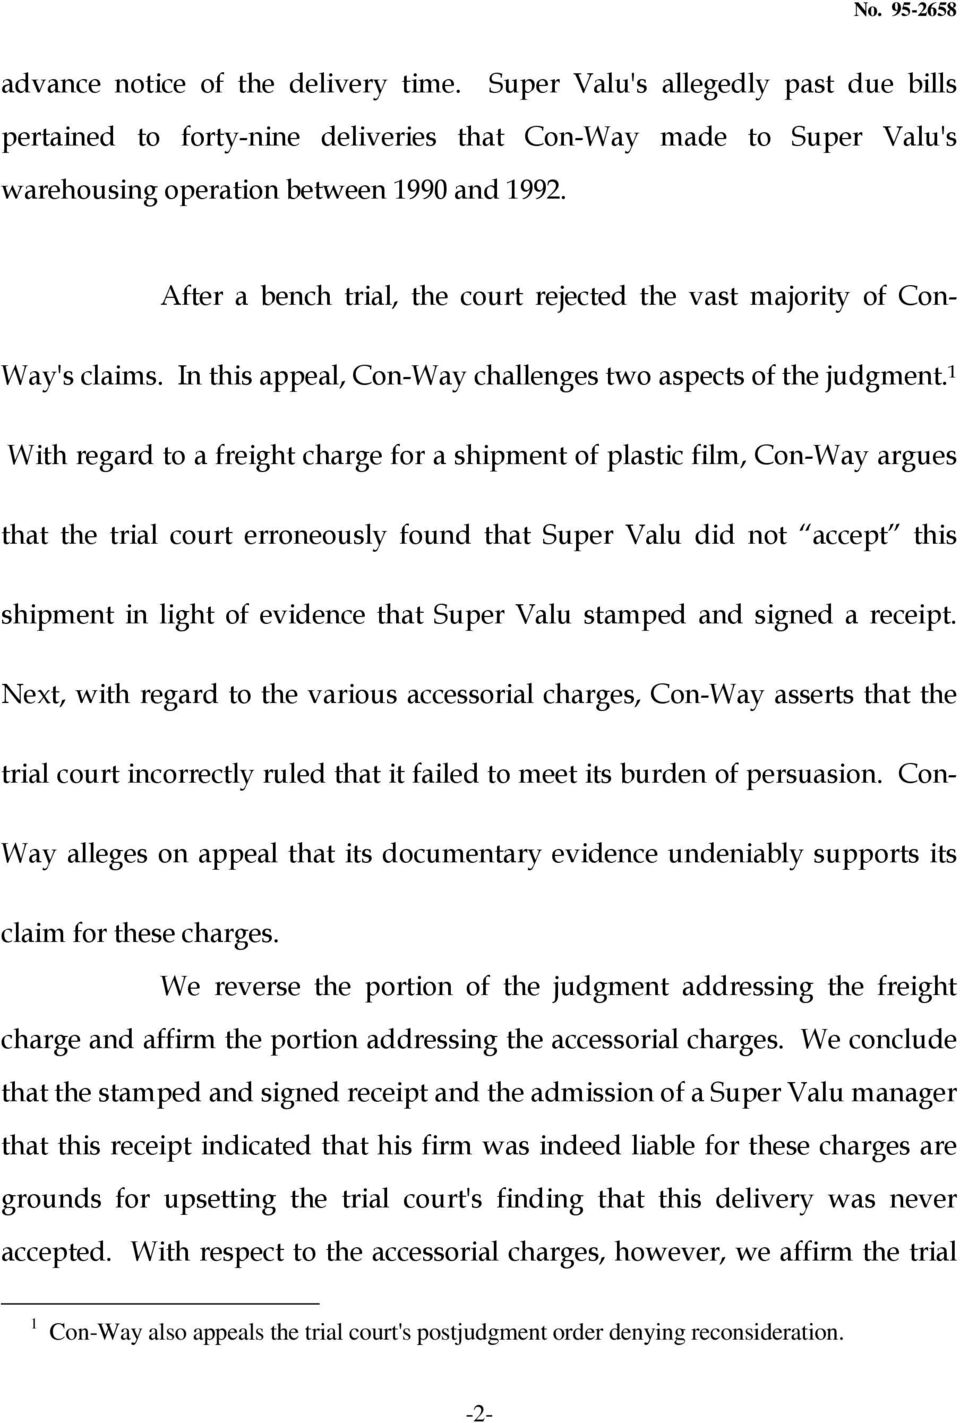 1 With regard to a freight charge for a shipment of plastic film, Con-Way argues that the trial court erroneously found that Super Valu did not accept this shipment in light of evidence that Super